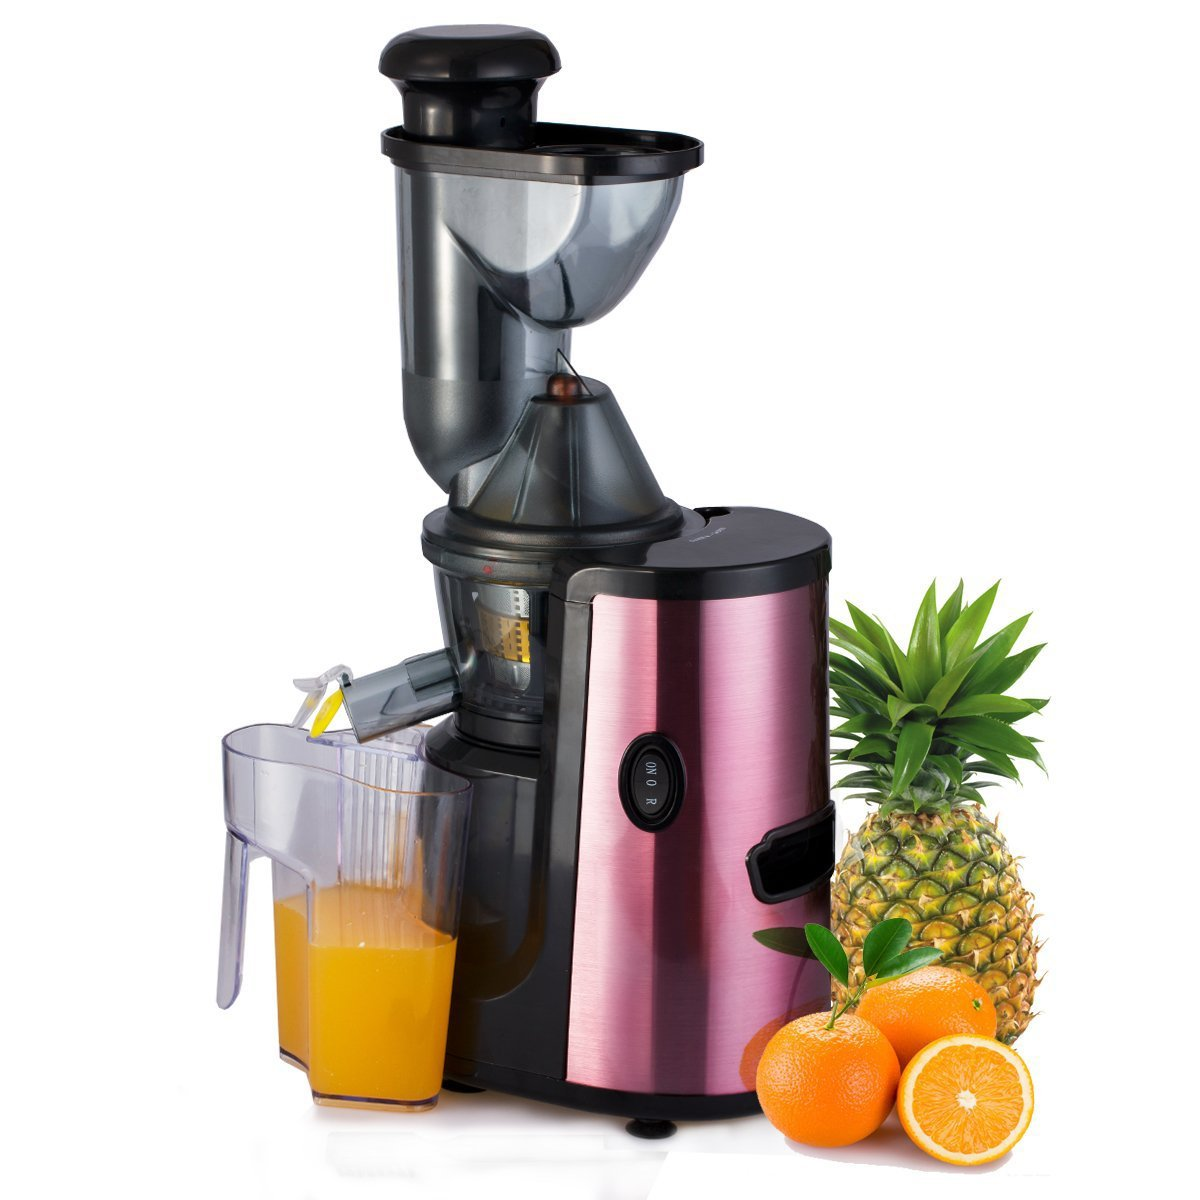 CUH Whole Fruit Vegetable Slow Juicer